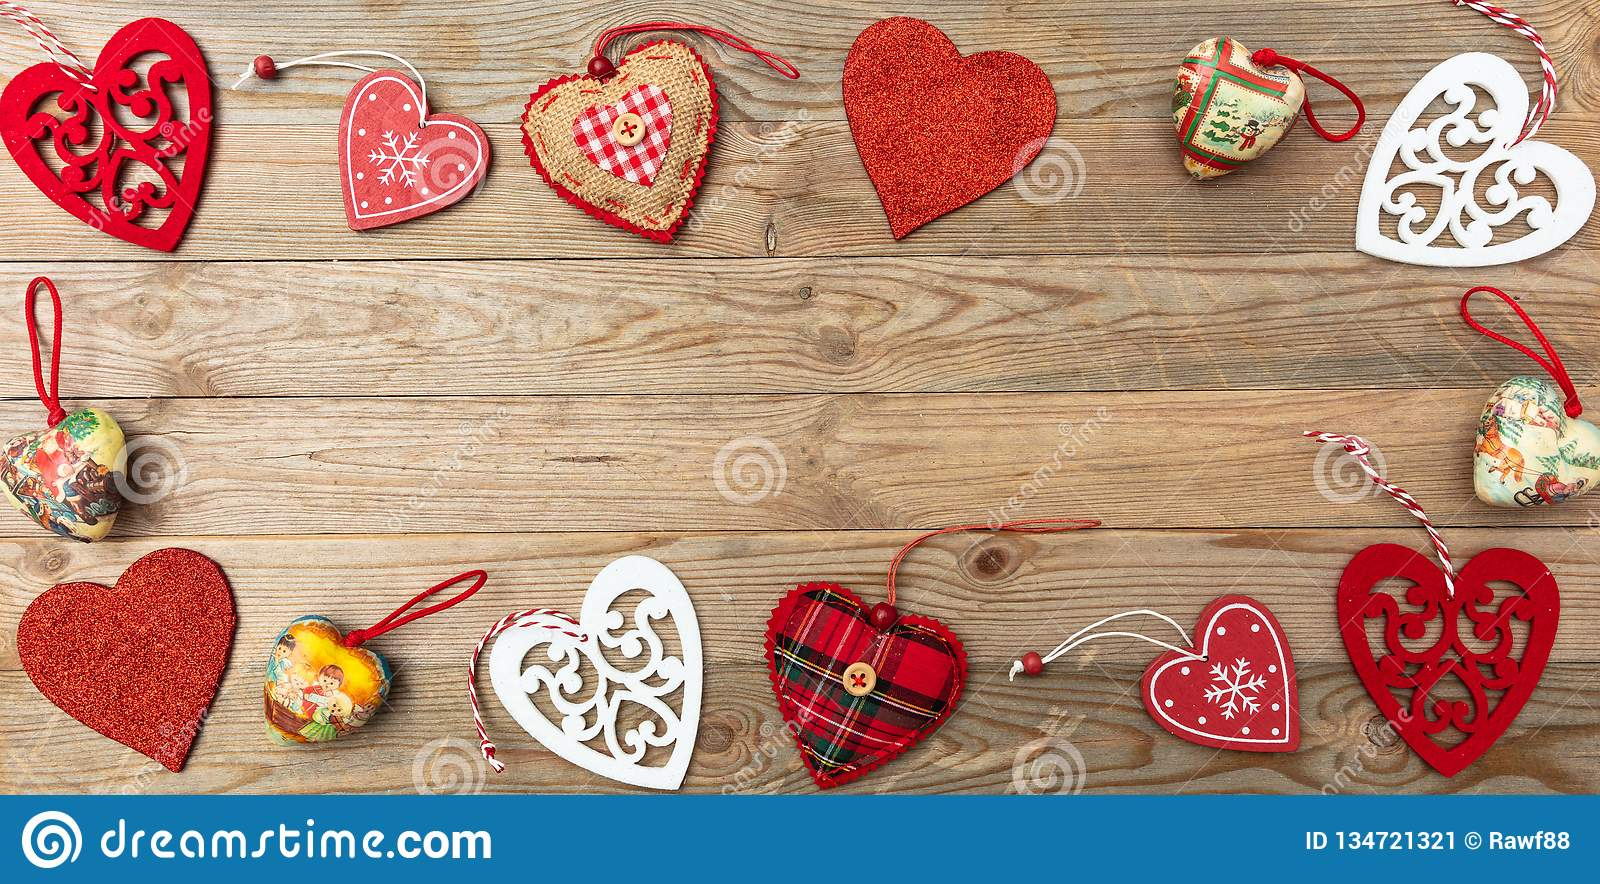 Valentines day. Top view, flat lay of various hearts, wooden background